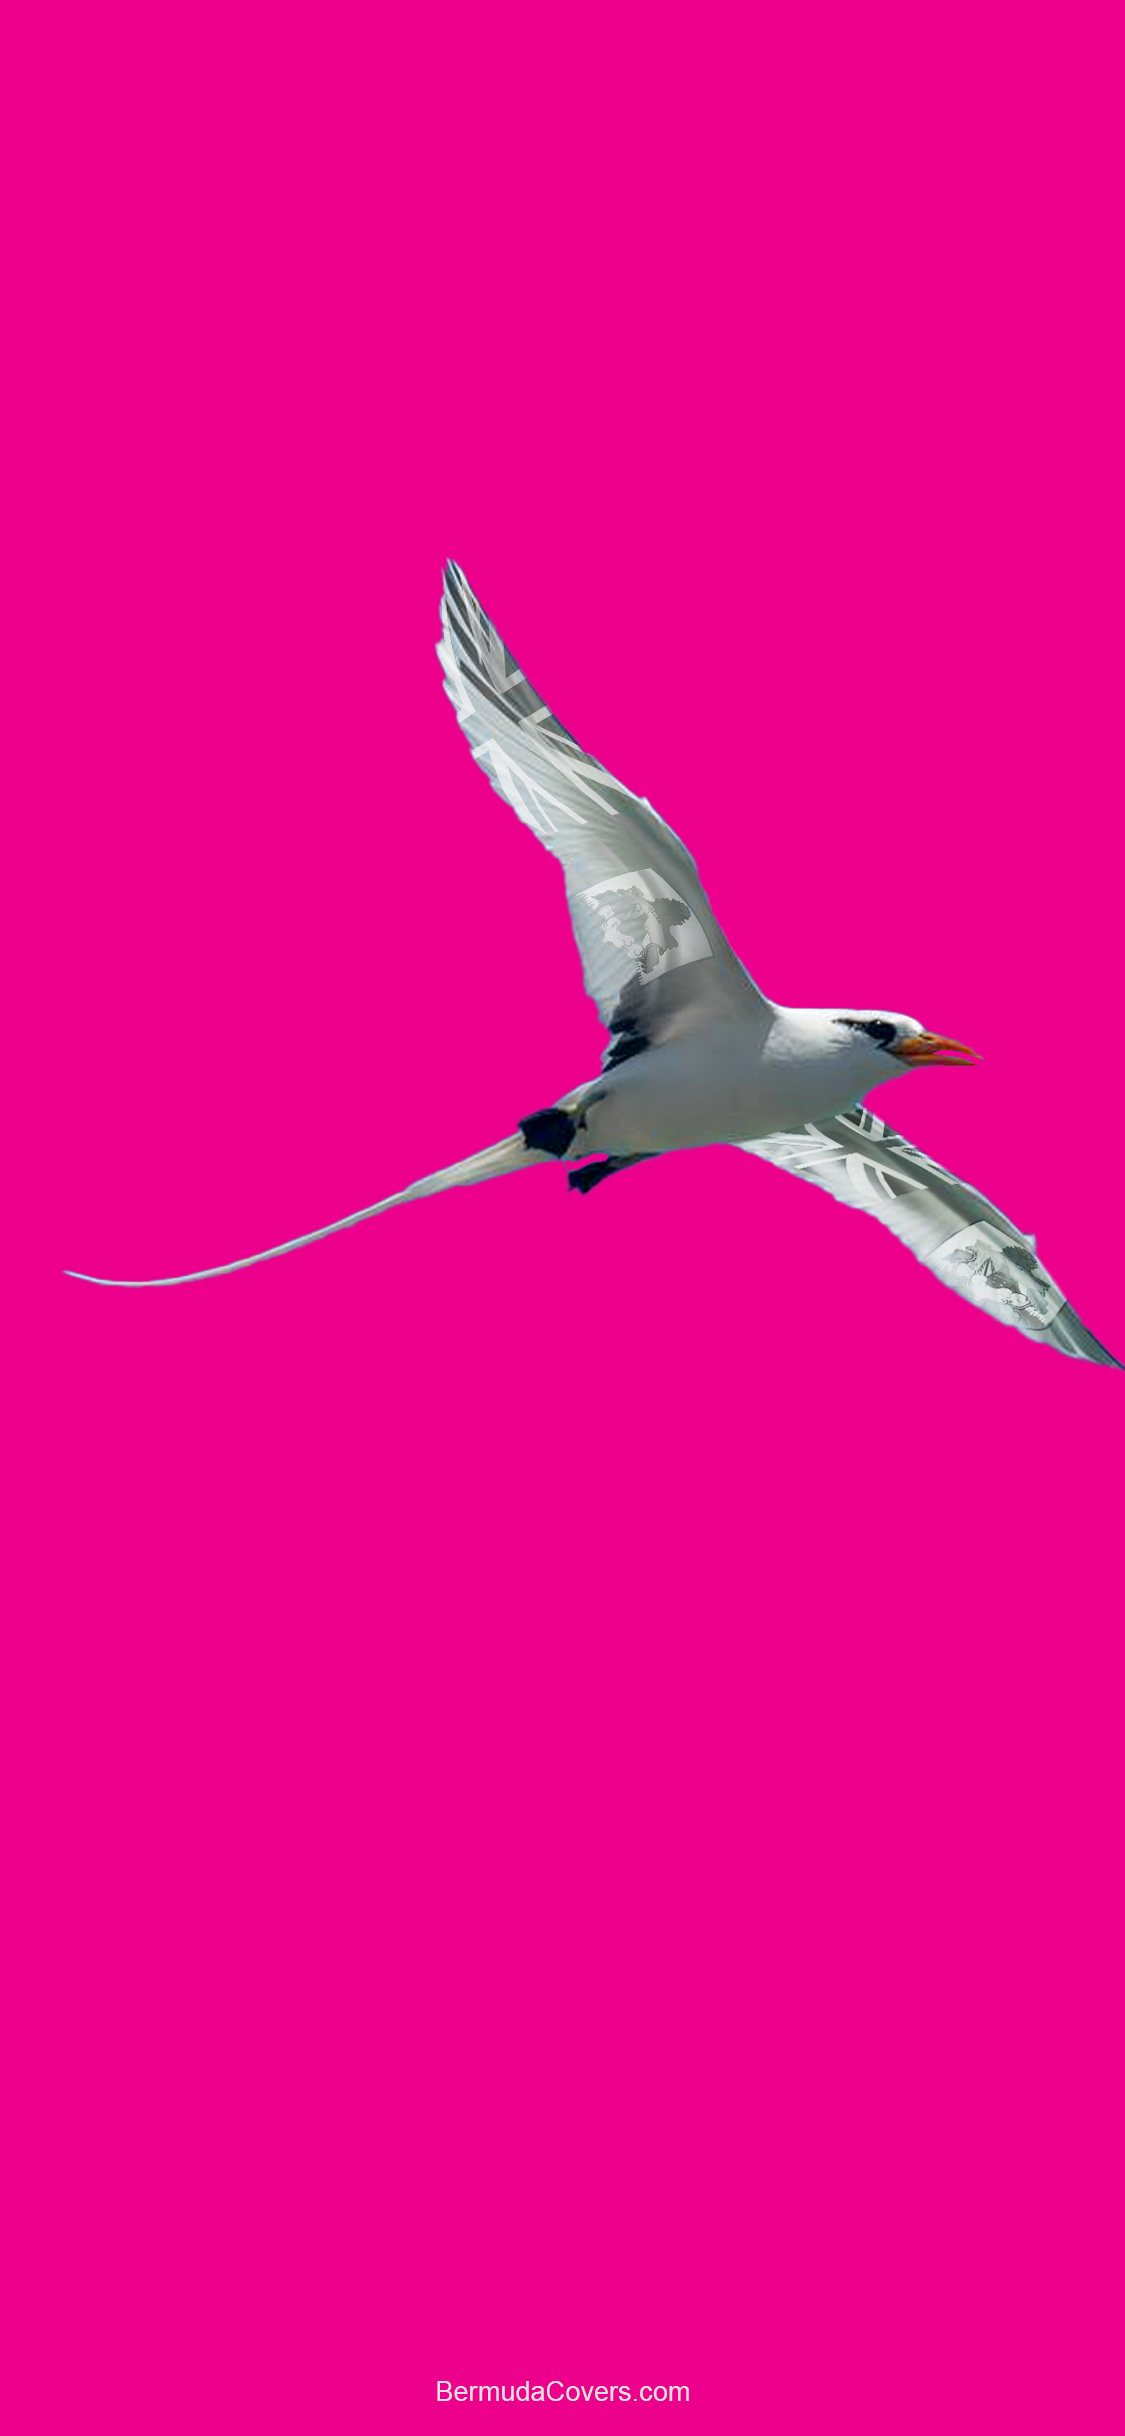 1 Longtail With Bermuda Flag Accent Pink Long Tail Bernews Mobile Phone Wallpaper Lock Dcreen Design Image Photo w29FQFCc